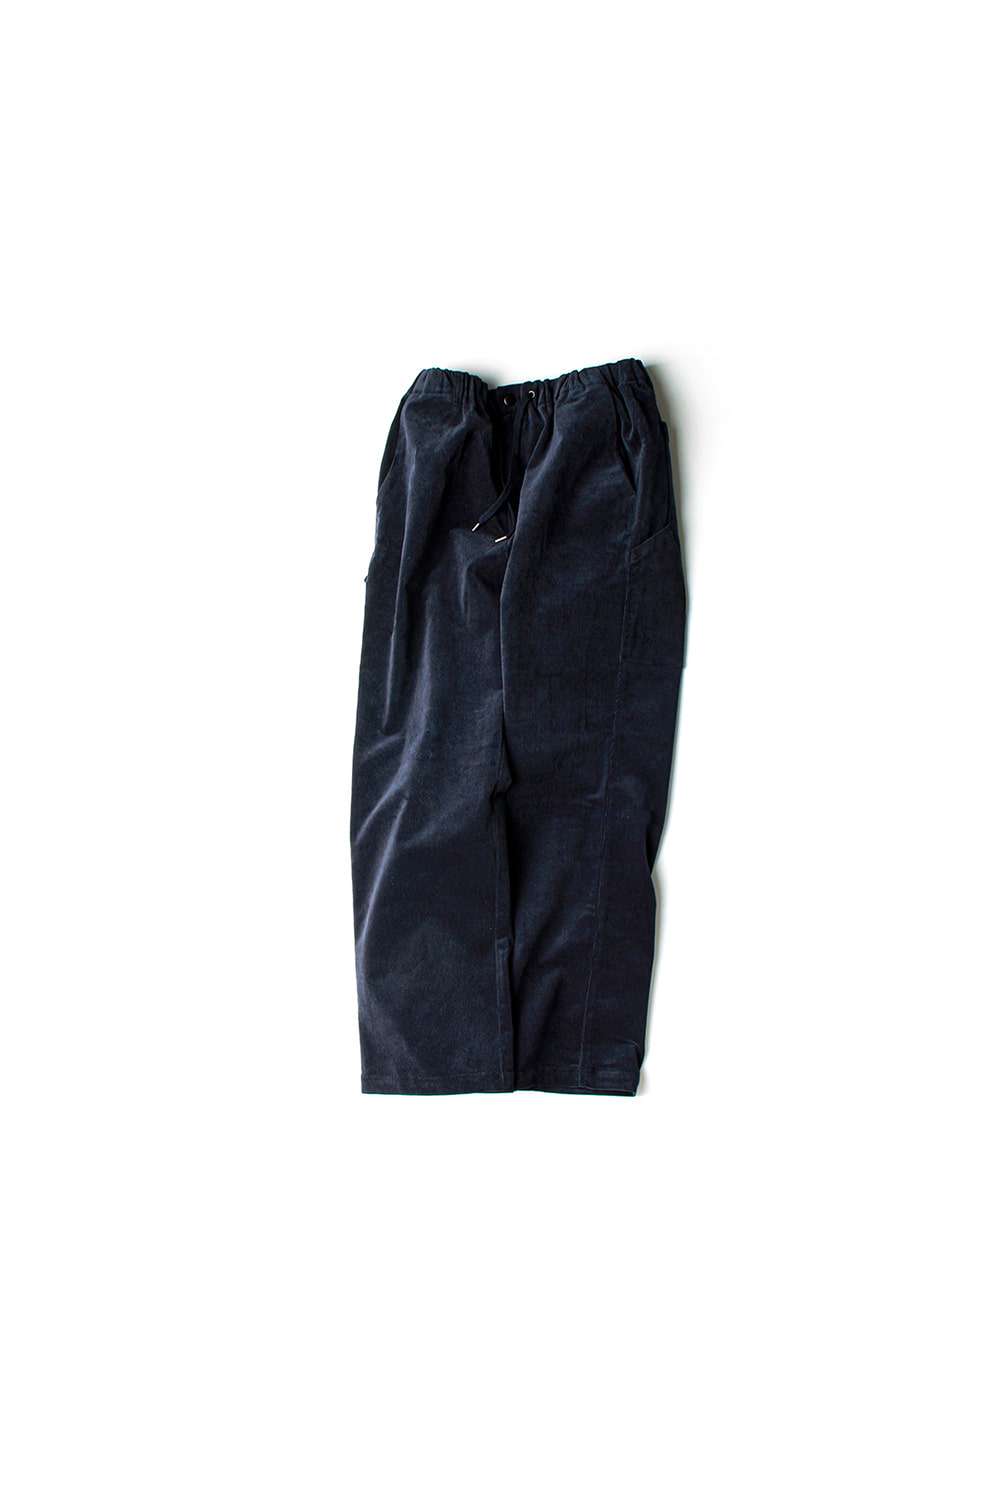 [Ourselves] CORDUROY TOOL PANTS (NV)